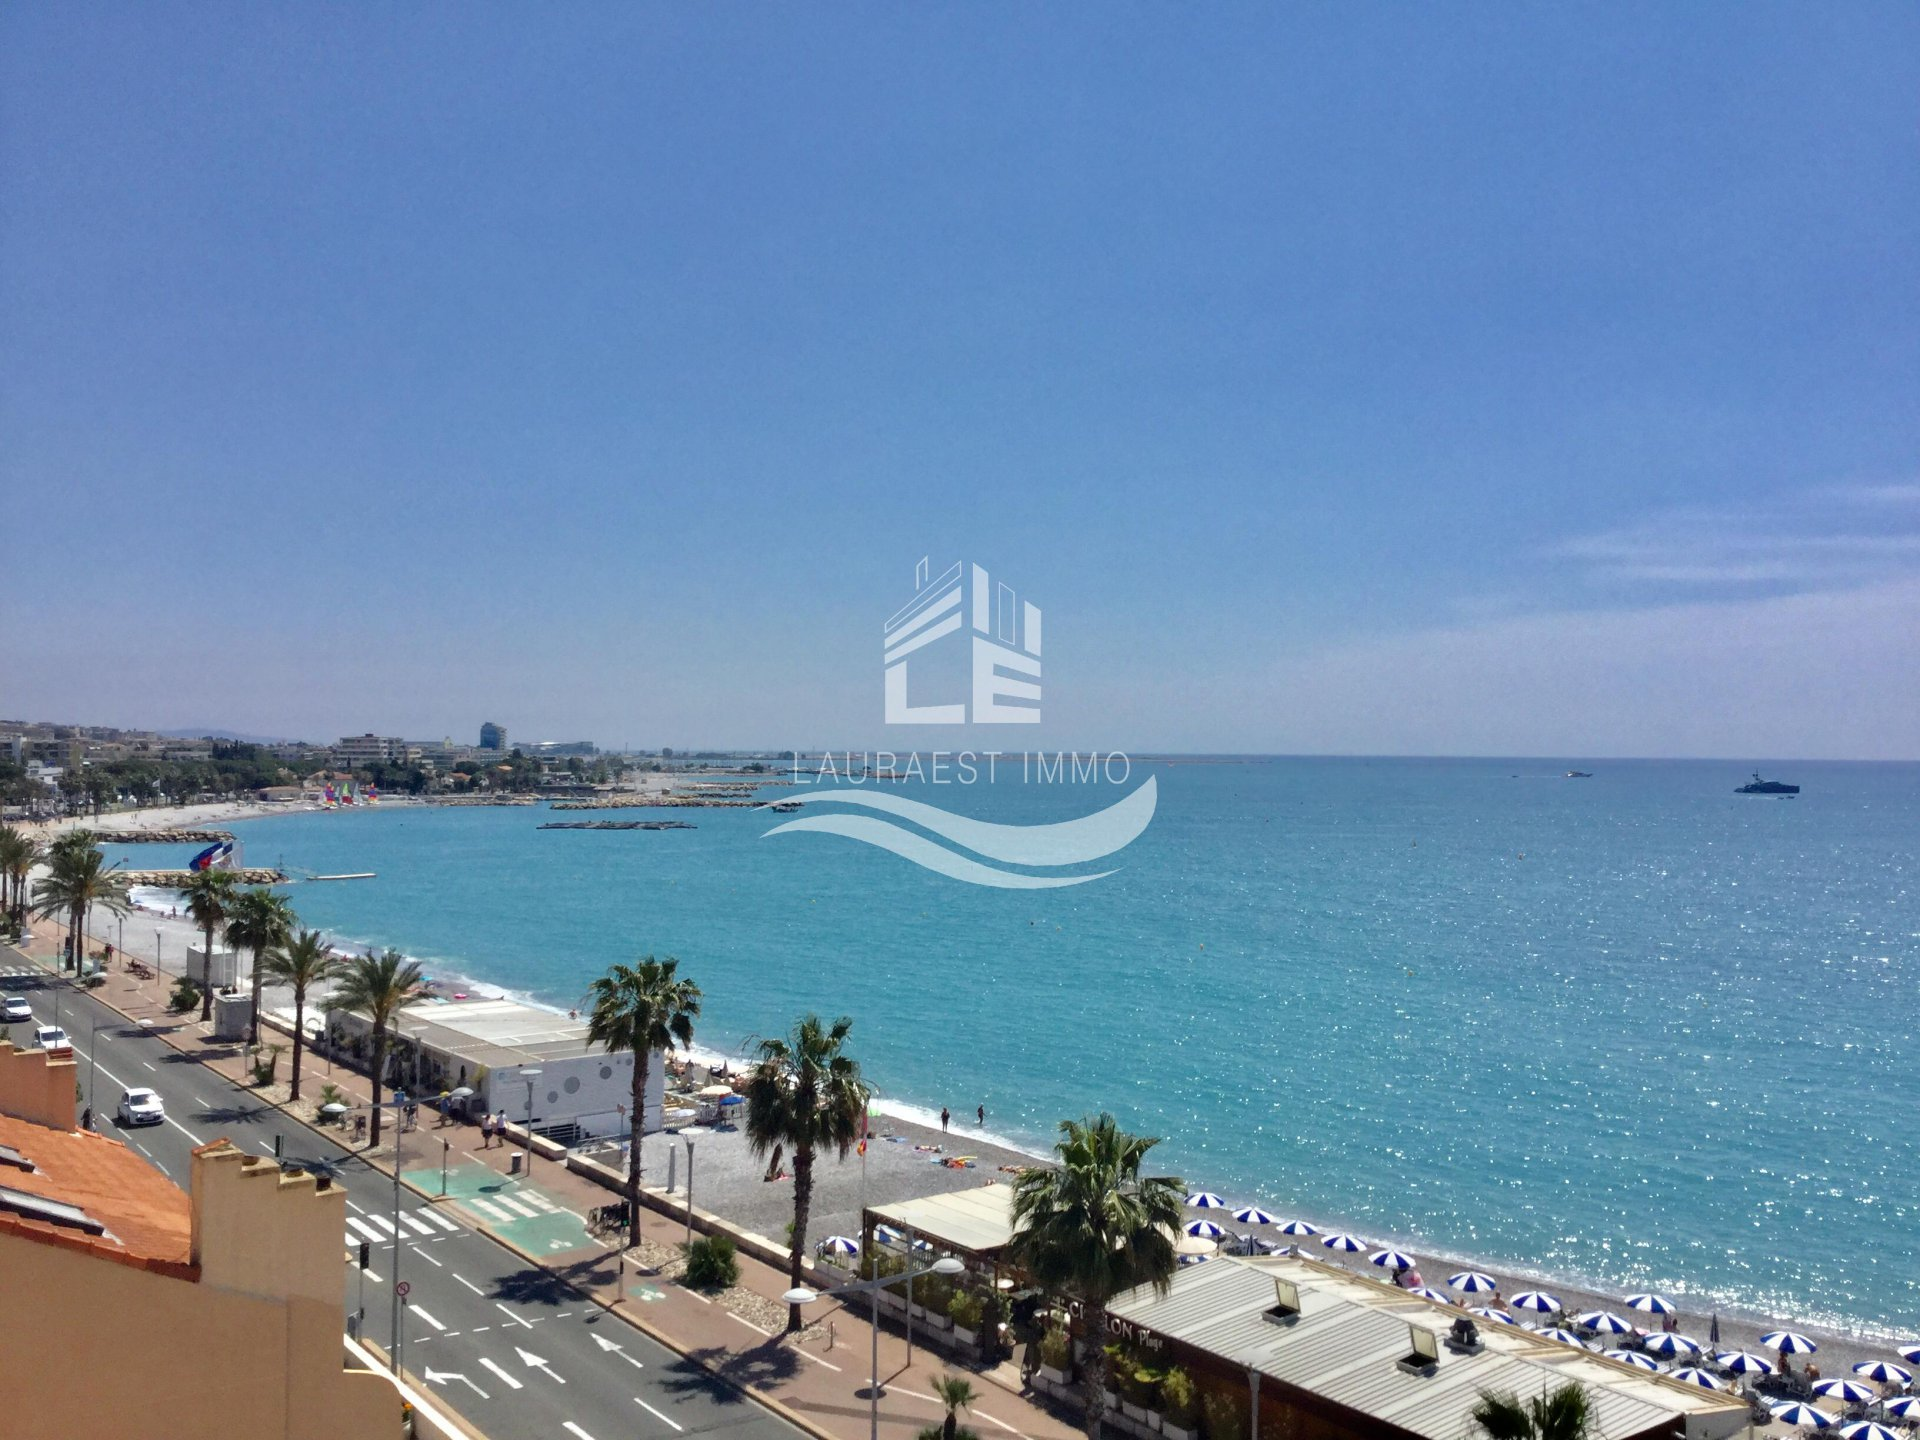 APPARTEMENT 2 CHAMBRES CAGNES -SUR-MER